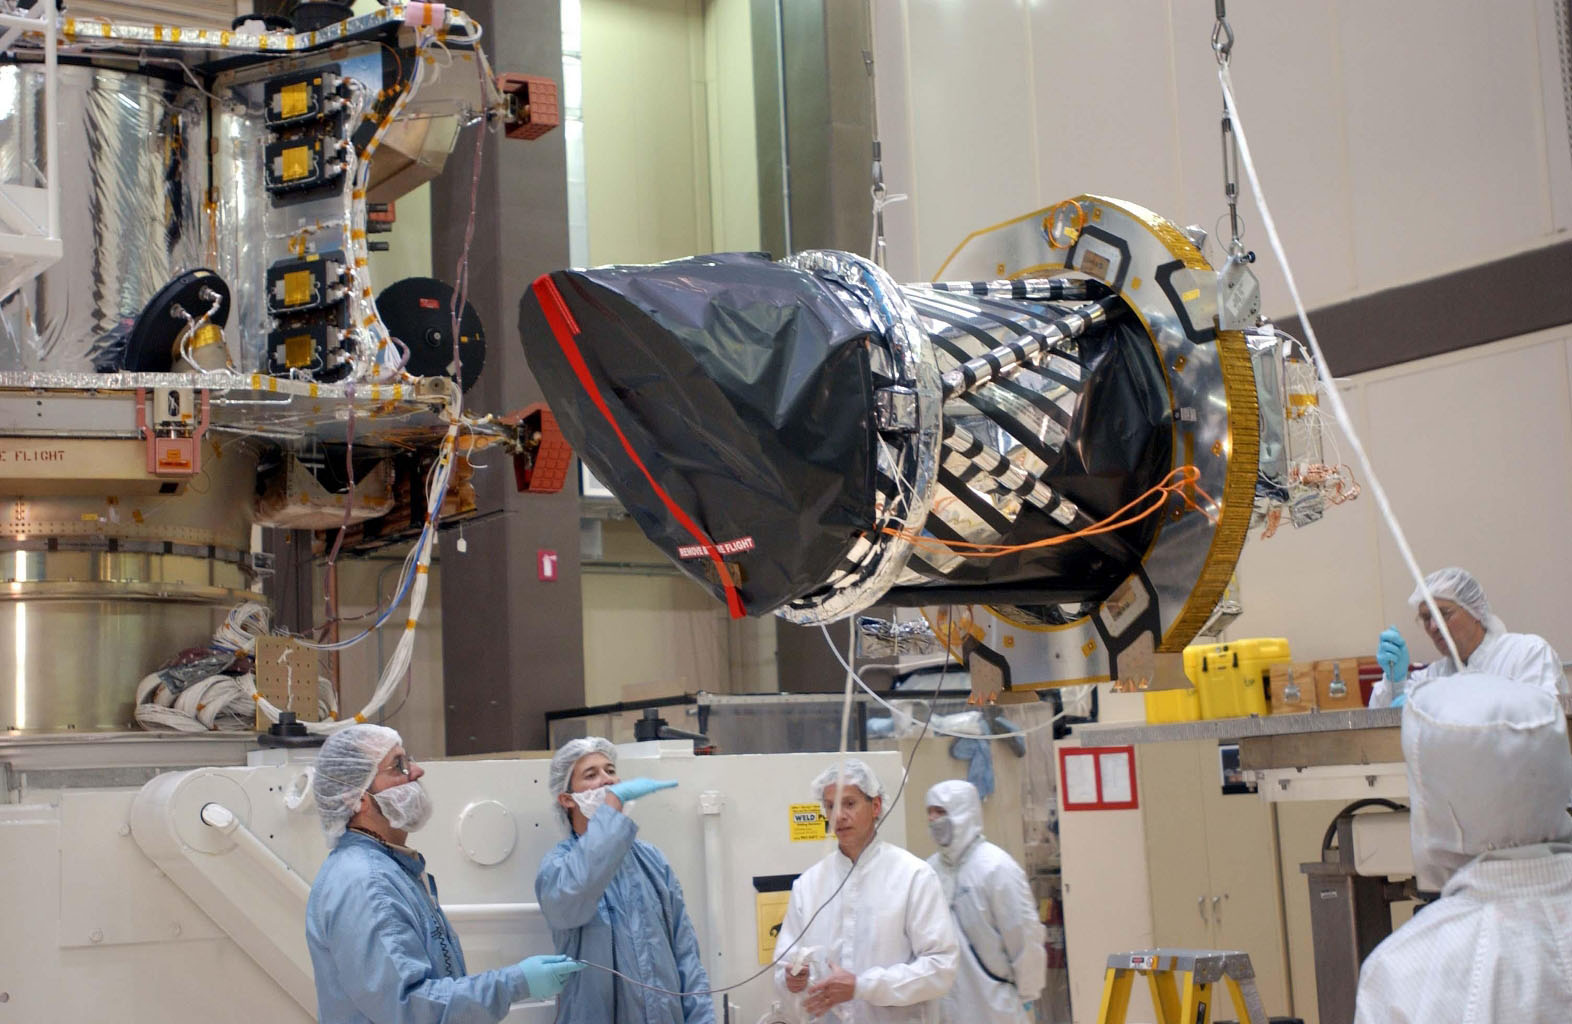 Workers at Lockheed Martin Space Systems, Denver, hoist a telescopic camera for installation onto NASA's Mars Reconnaissance Orbiter spacecraft on Dec. 11, 2004.